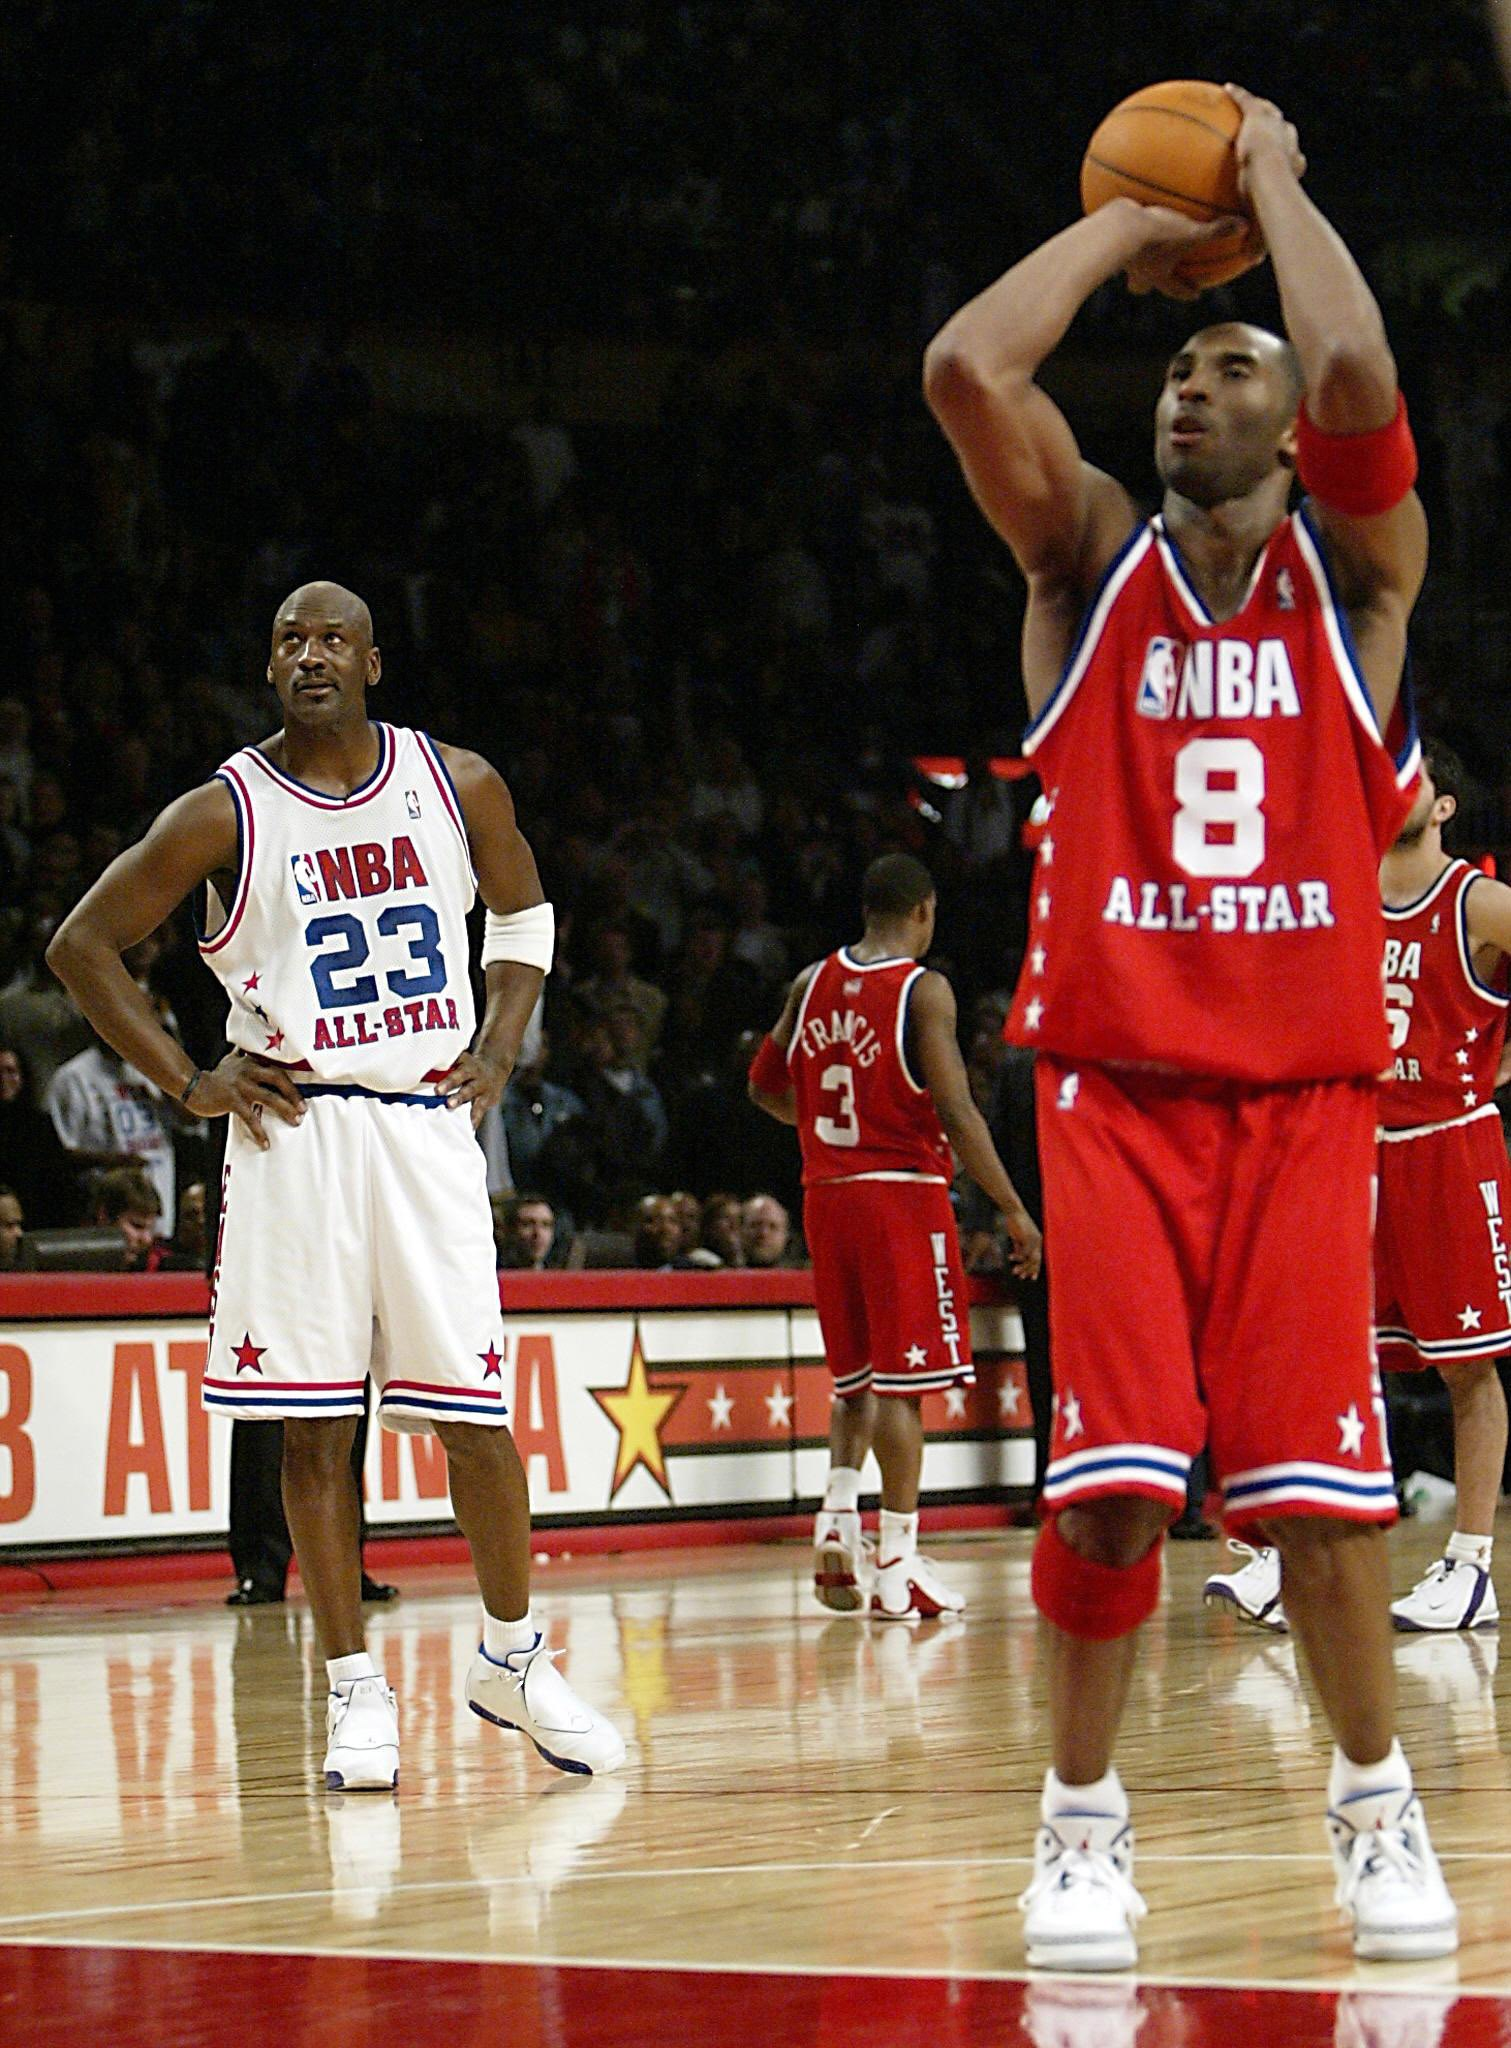 NBA All-Star Michael Jordan (L) of the Washington Wizards watches Kobe Bryant (R) of the Los Angeles Lakers miss his second free throw that would have ended the NBA All-Star game at Philips Arena on February 9, 2003 in Atlanta, Georgia.